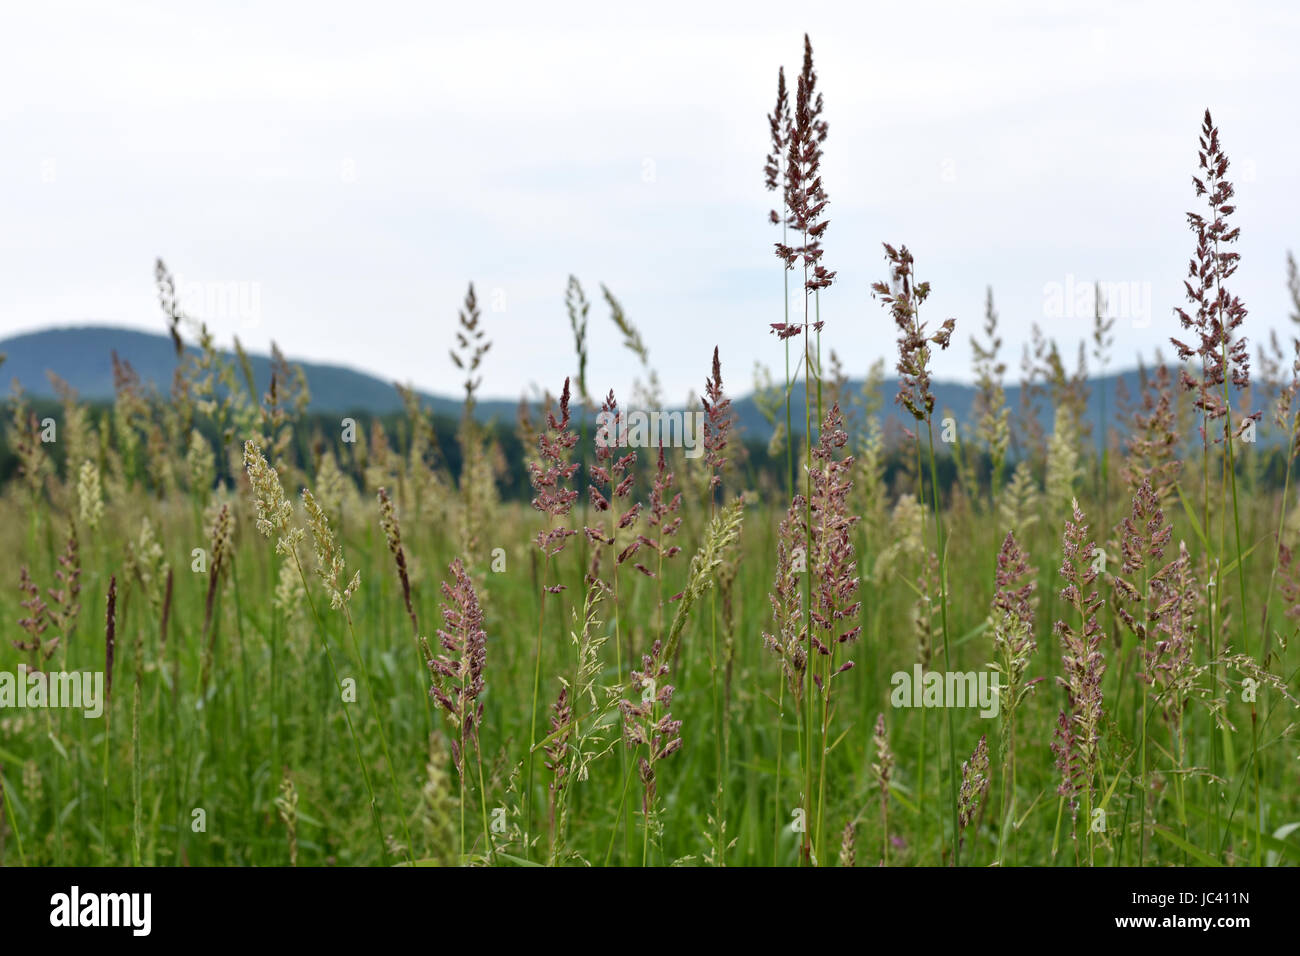 A scenic view across tall grass meadow to the Seven SIster's Ridgeline of the Holyoke Range. - Stock Image